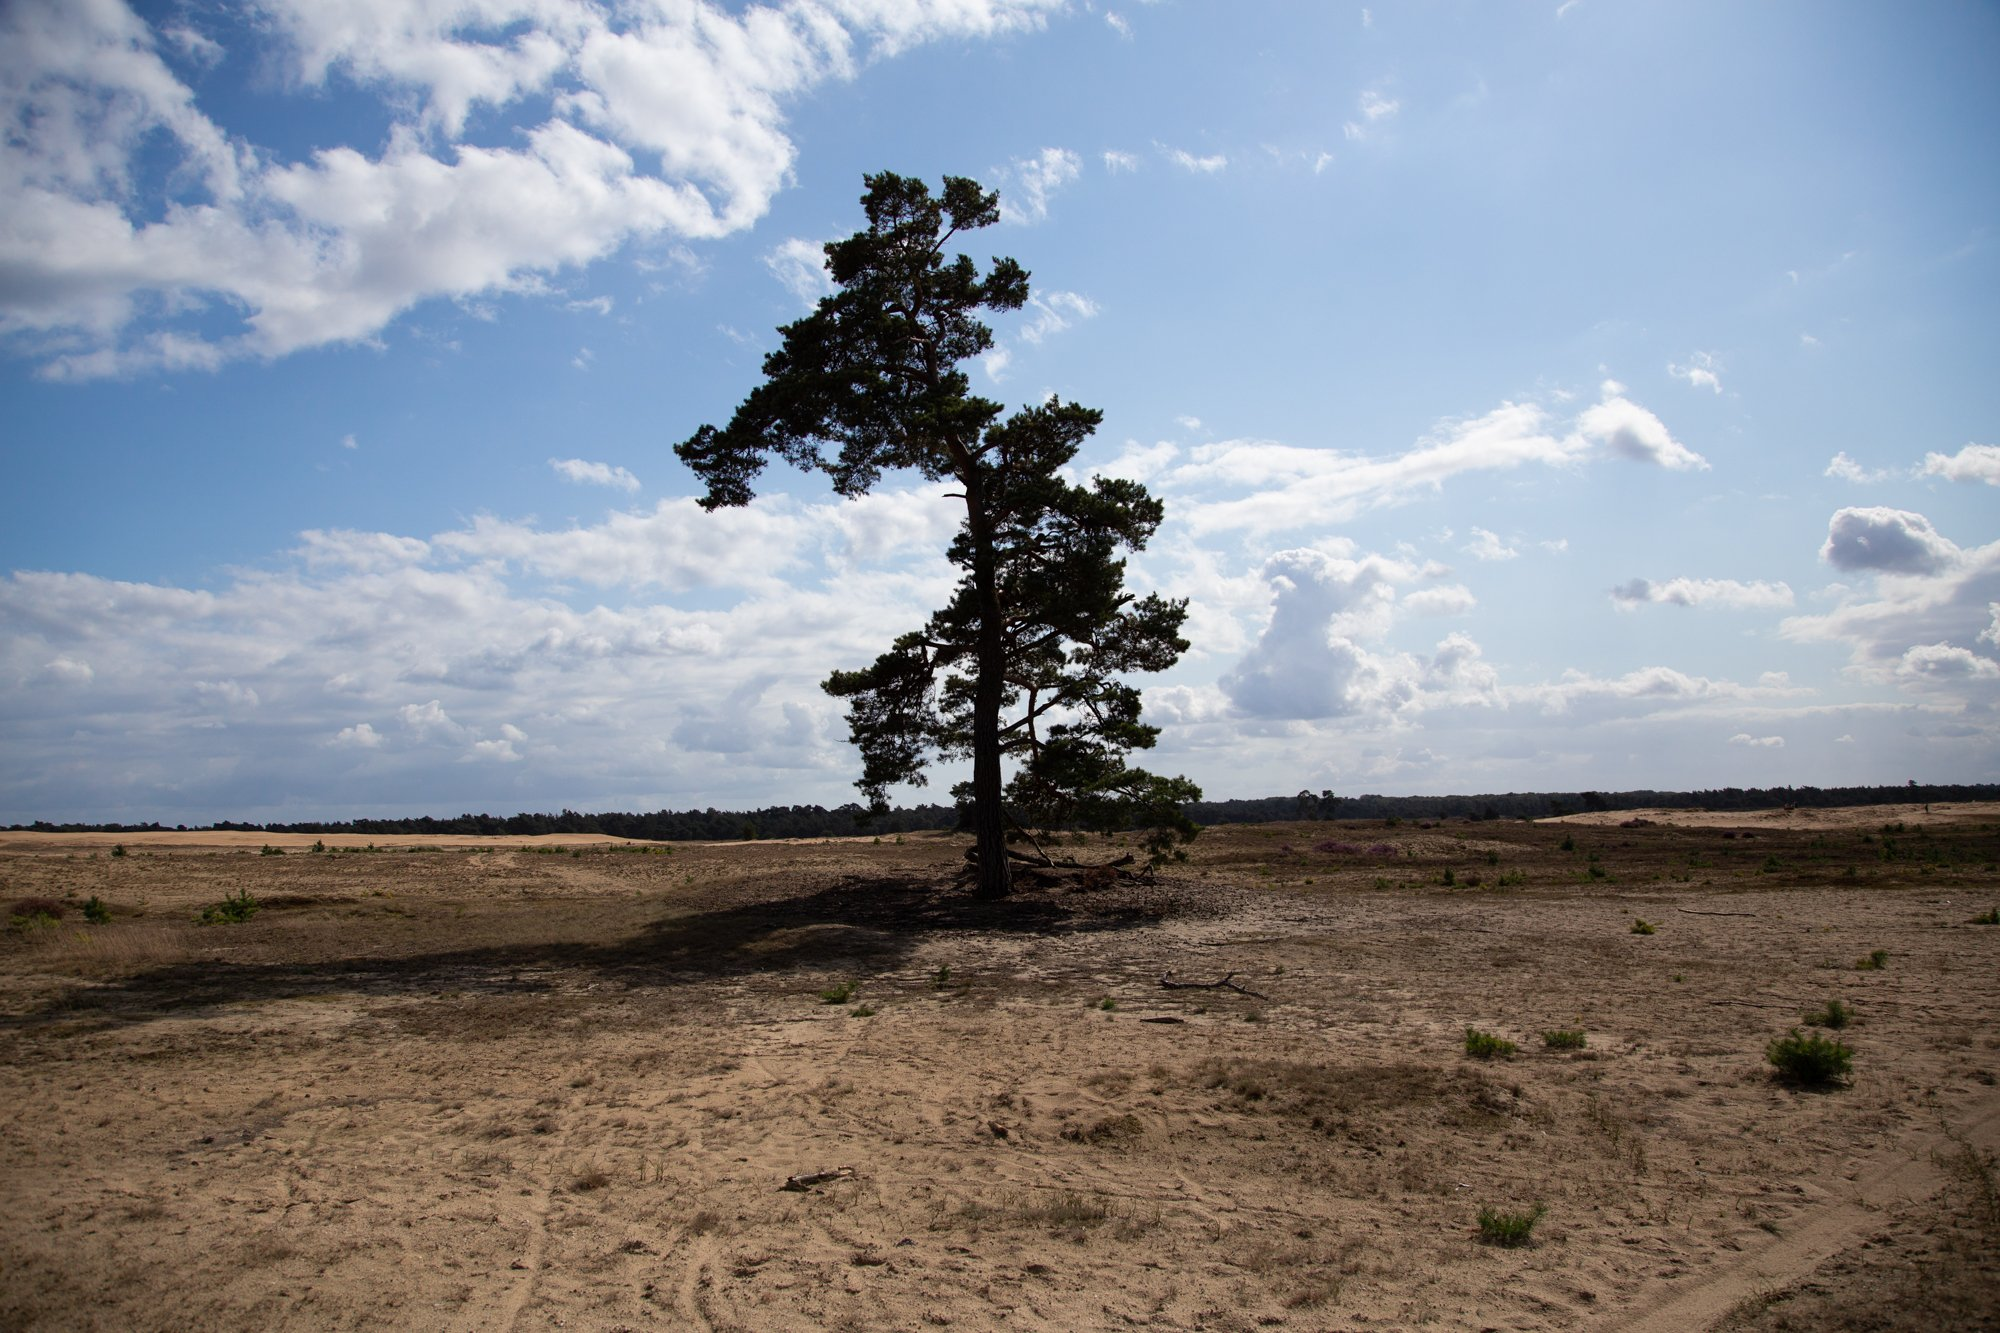 Lone tree standing in dunes under a blue sky with branches in shadow